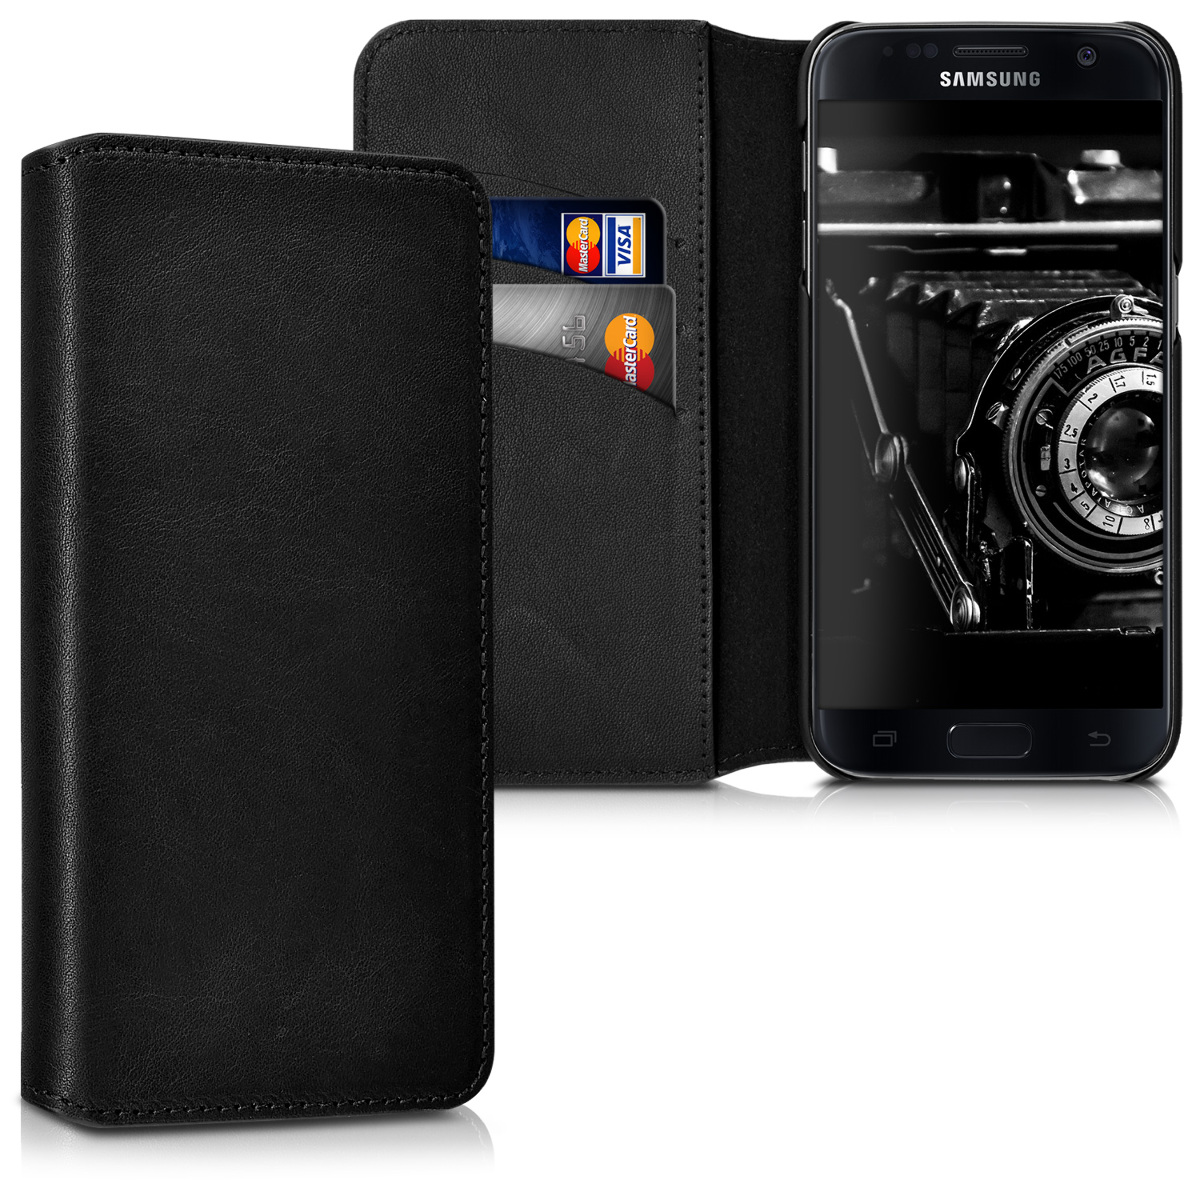 kalibri Case for Samsung Galaxy S7 - Genuine Leather Protective Cover with Card Slots, Stand Feature - Black